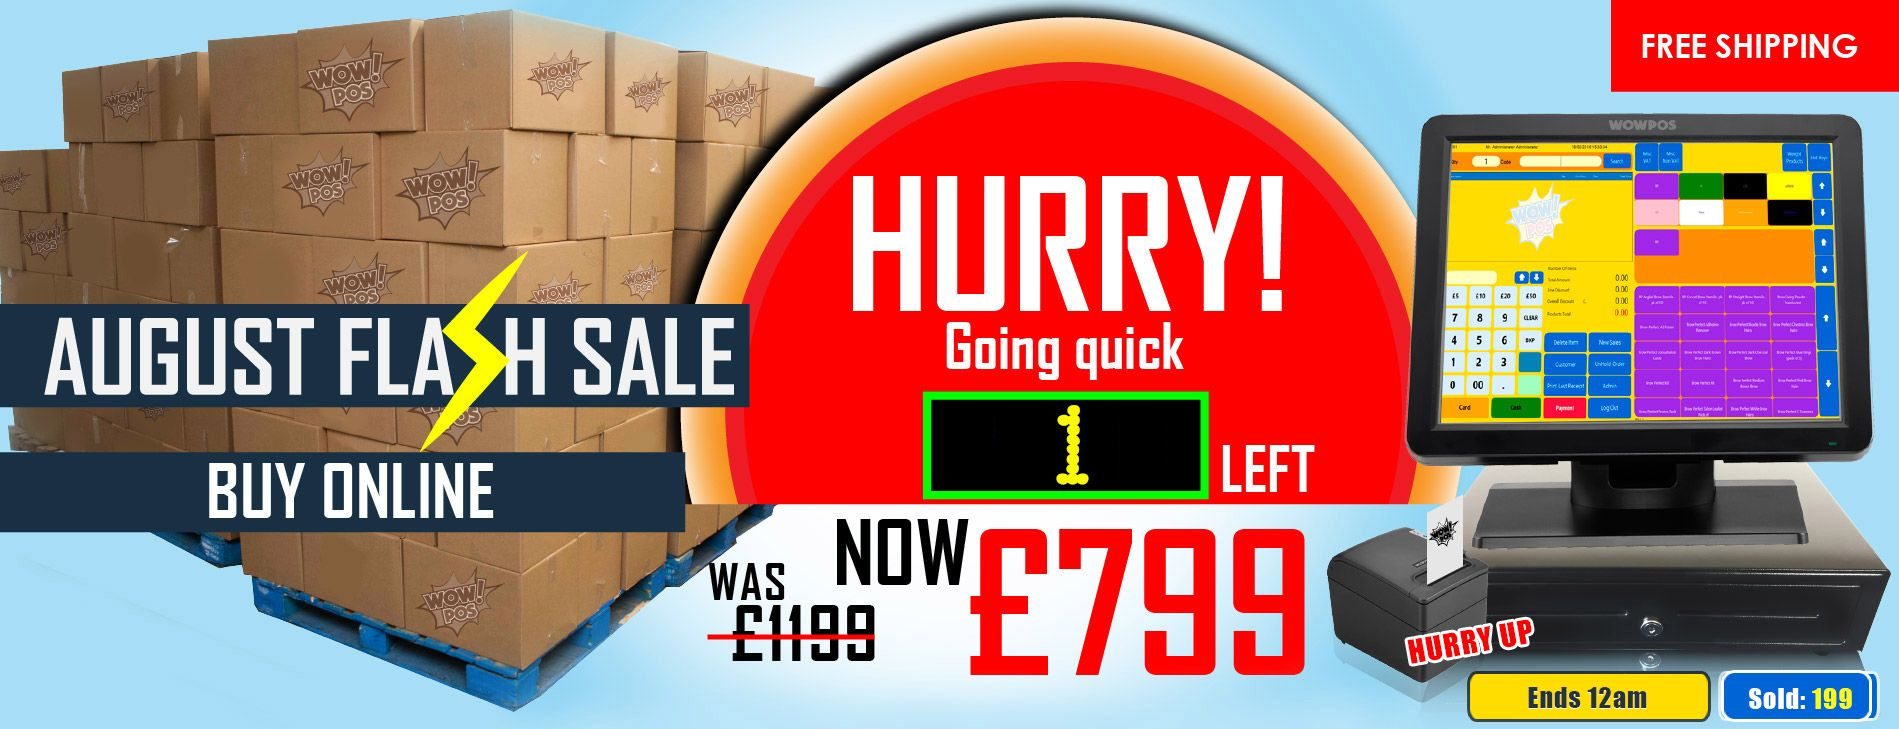 Epos system for Retail or hospitality was at £1199, Now only £799. Going quick 1 Left. It ends today night 12 AM , Hurry up ...http://goo.gl/mDg9aa